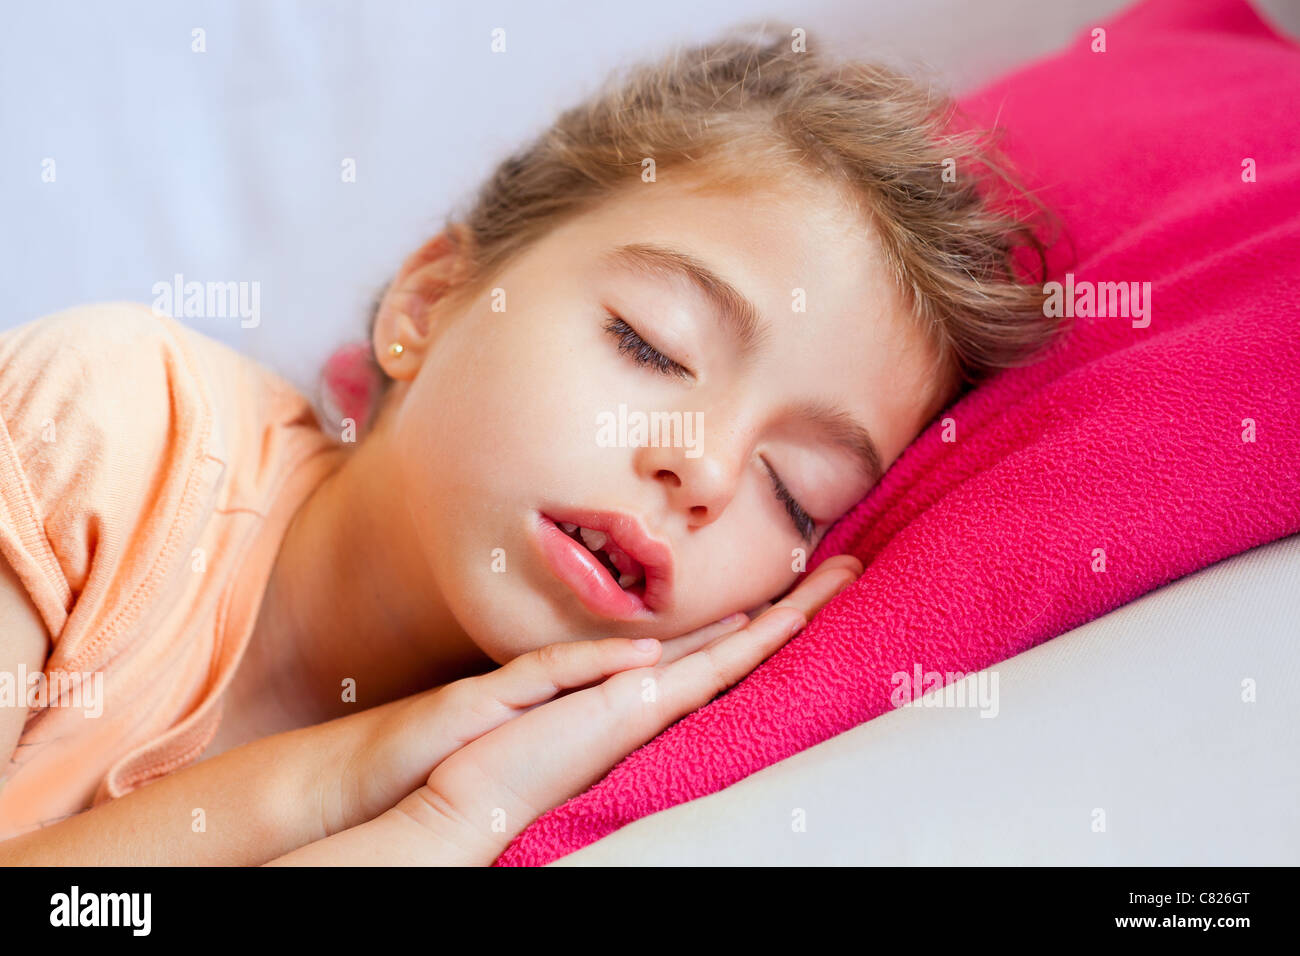 Deep sleeping children girl closeup portrait on pink pillow - Stock Image